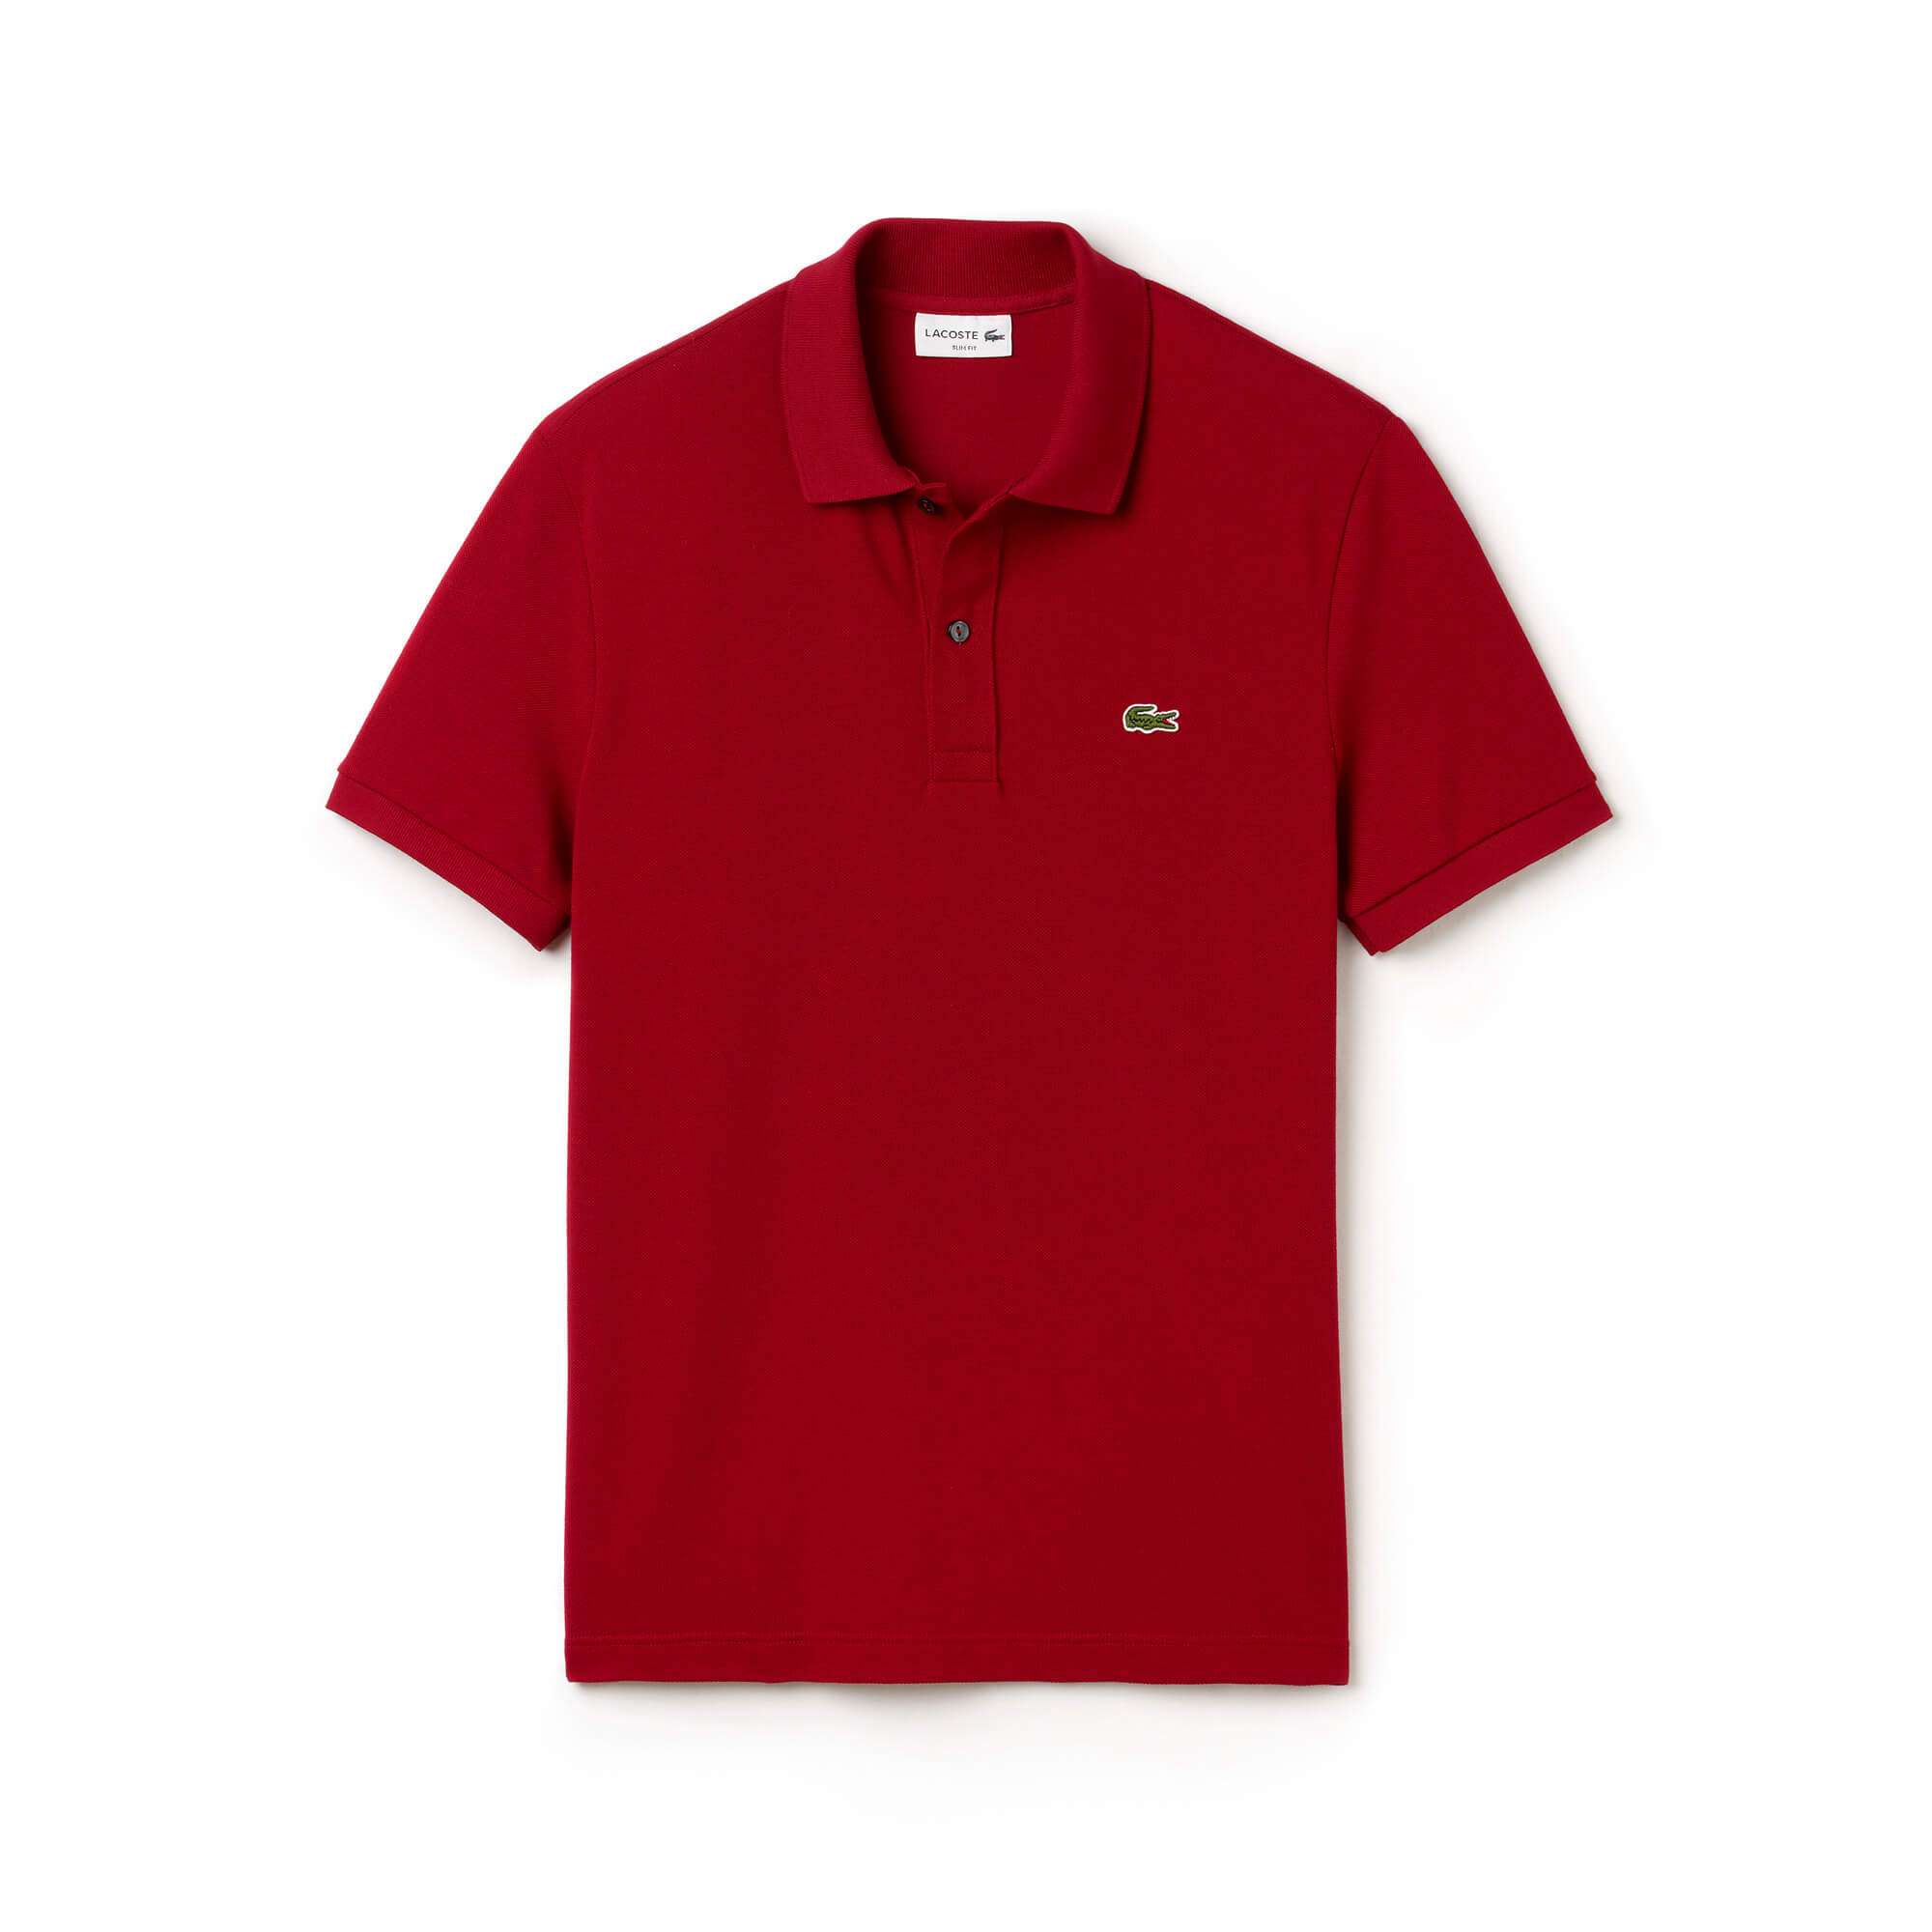 Lacoste Men's Slim Fit Lacoste Polo Shirt in Petit Piqué